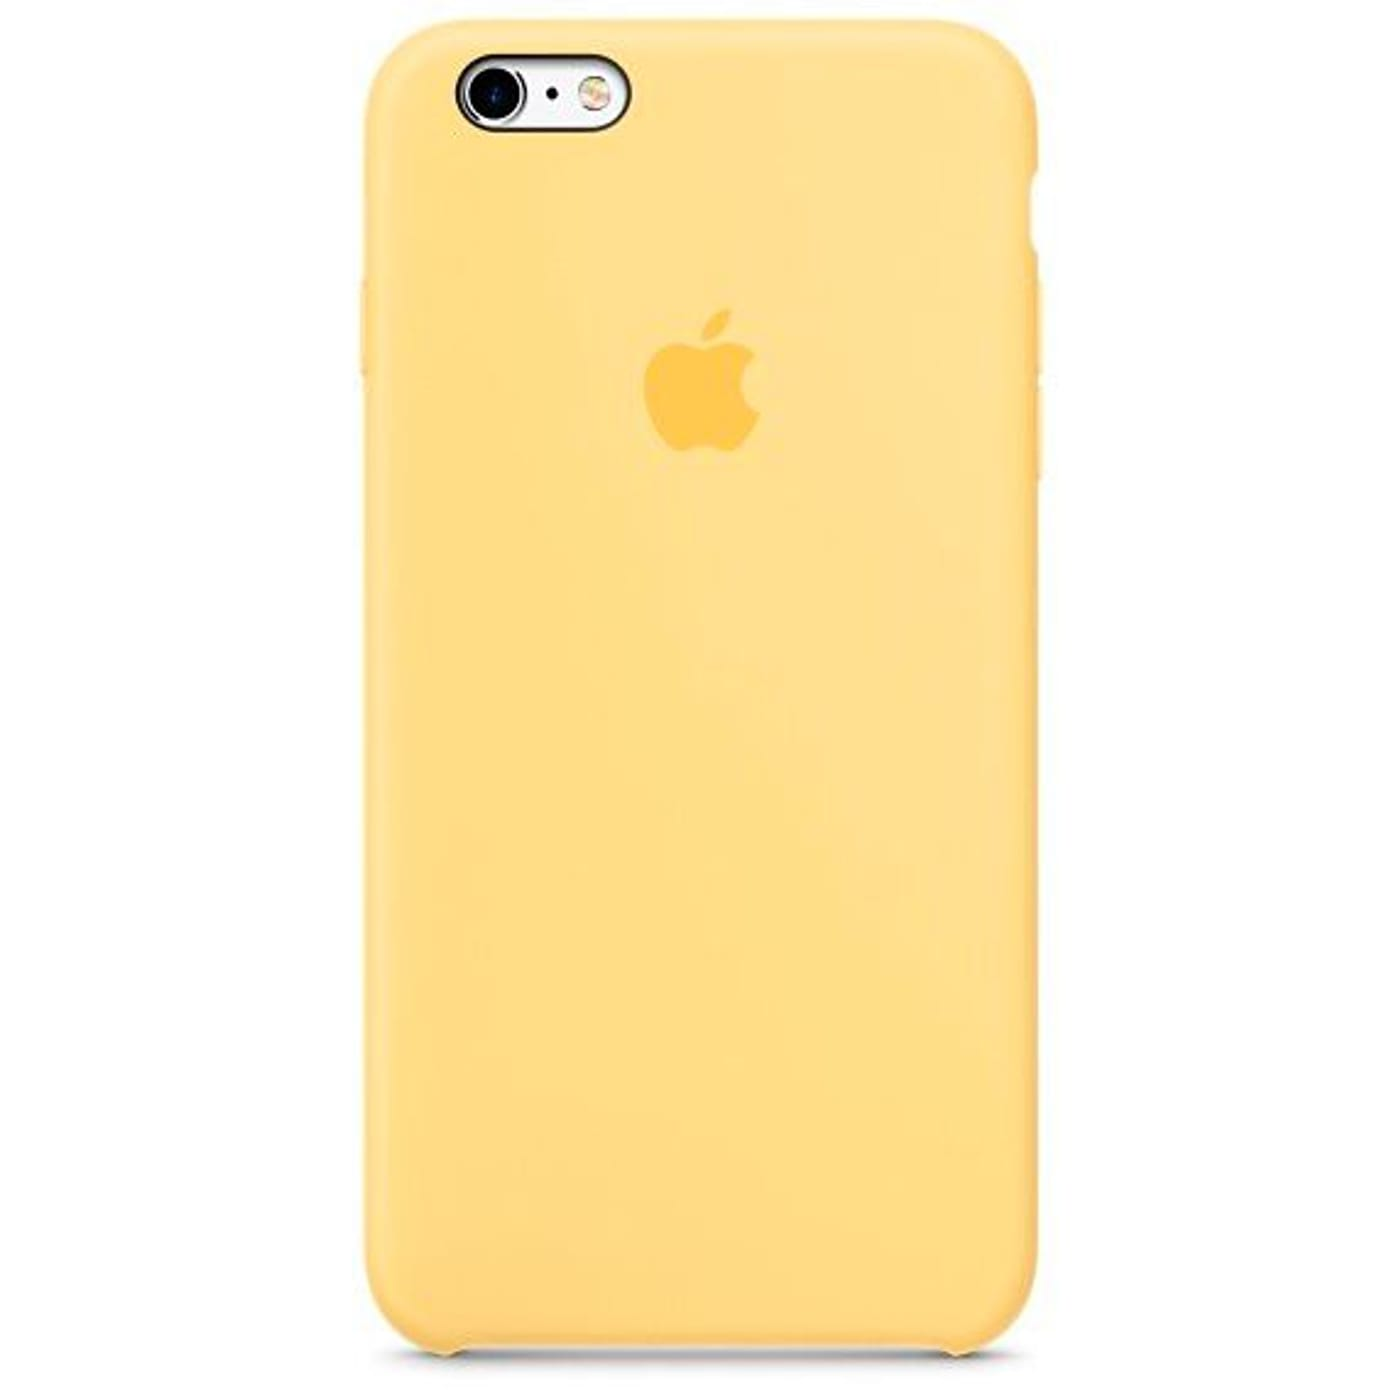 Coque Silicone Iphone  C